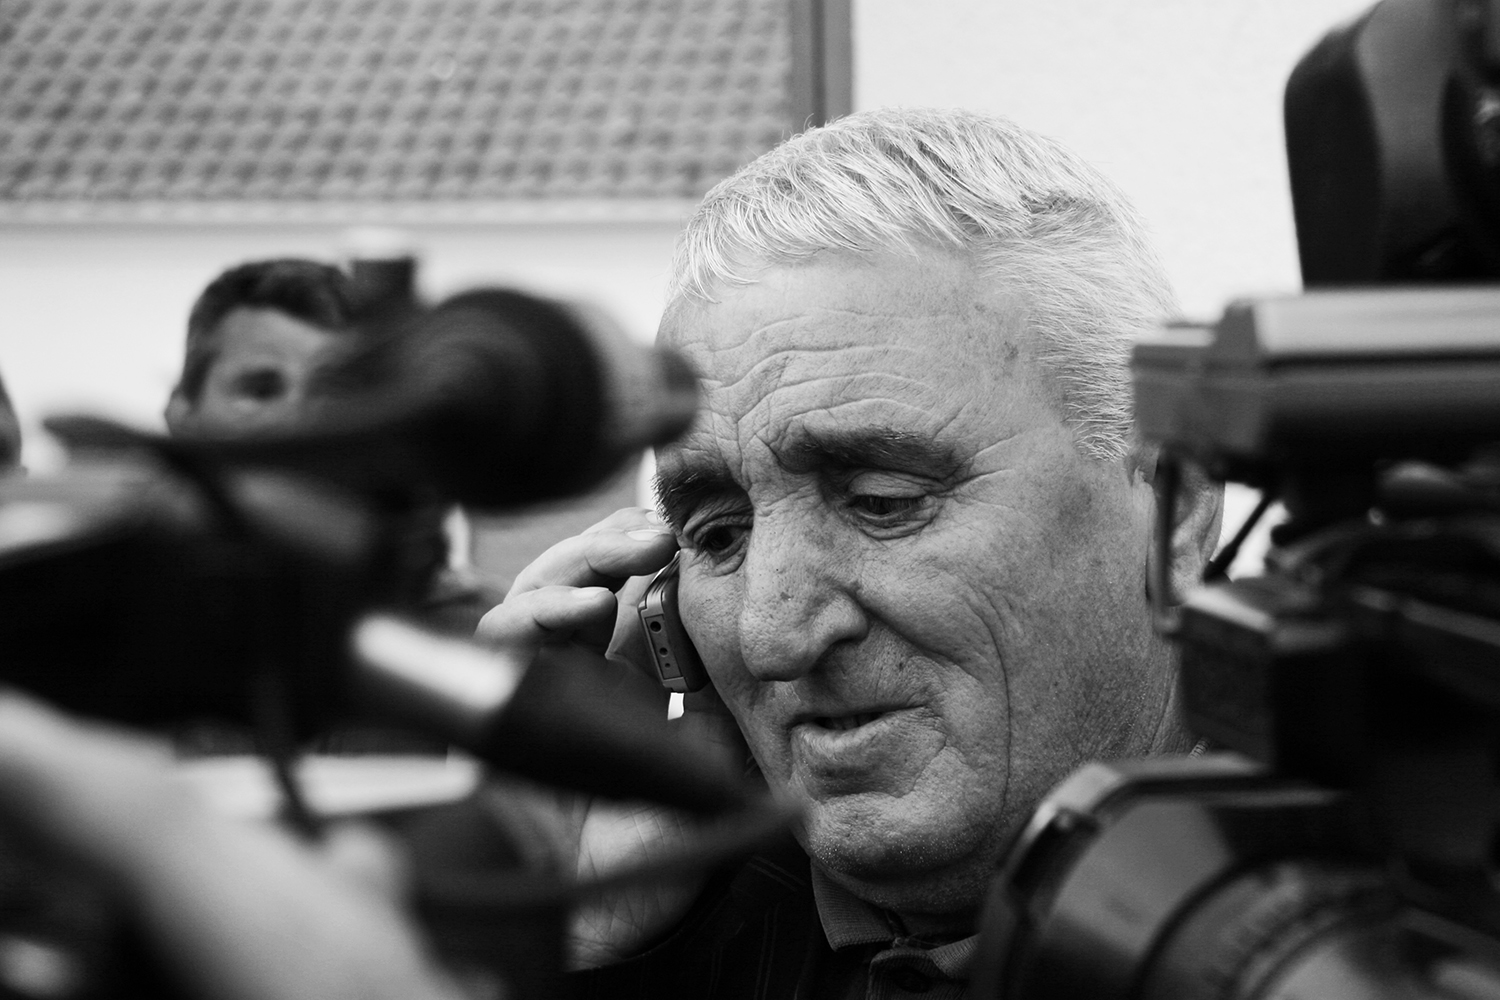 The father of Ramush Haradinaj speaks to his son minutes after he was found not guilty on war crimes and crimes against humanity.